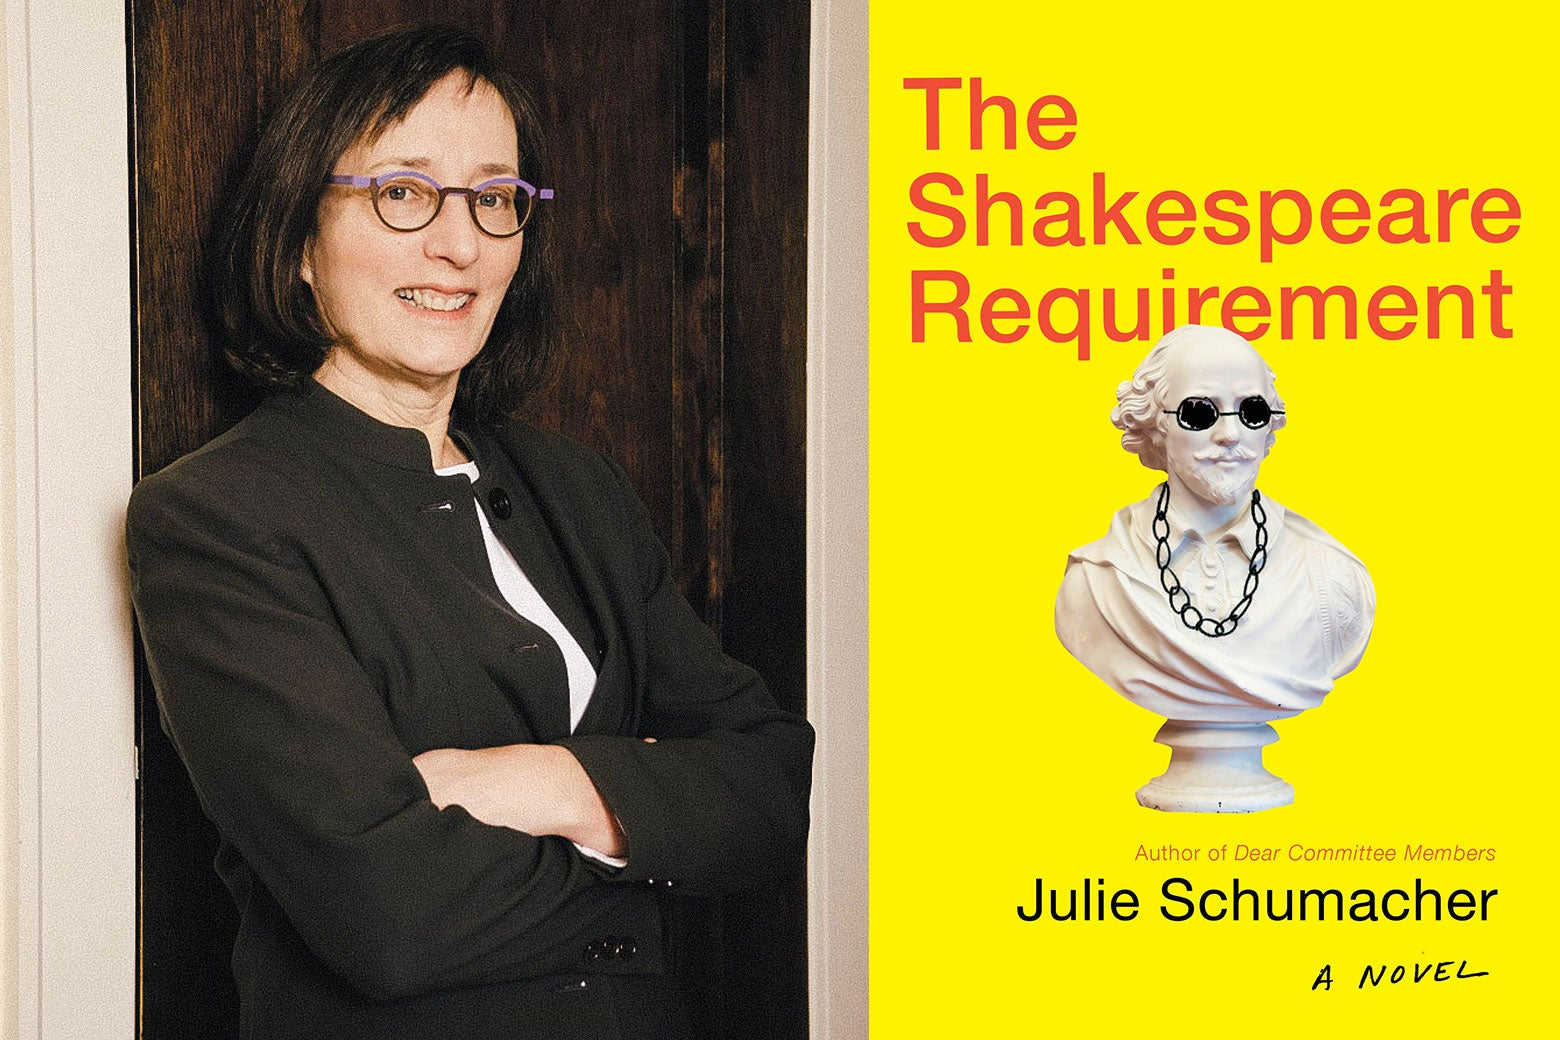 Author Julie Schumacher and the cover of her new book, The Shakespeare Requirement.